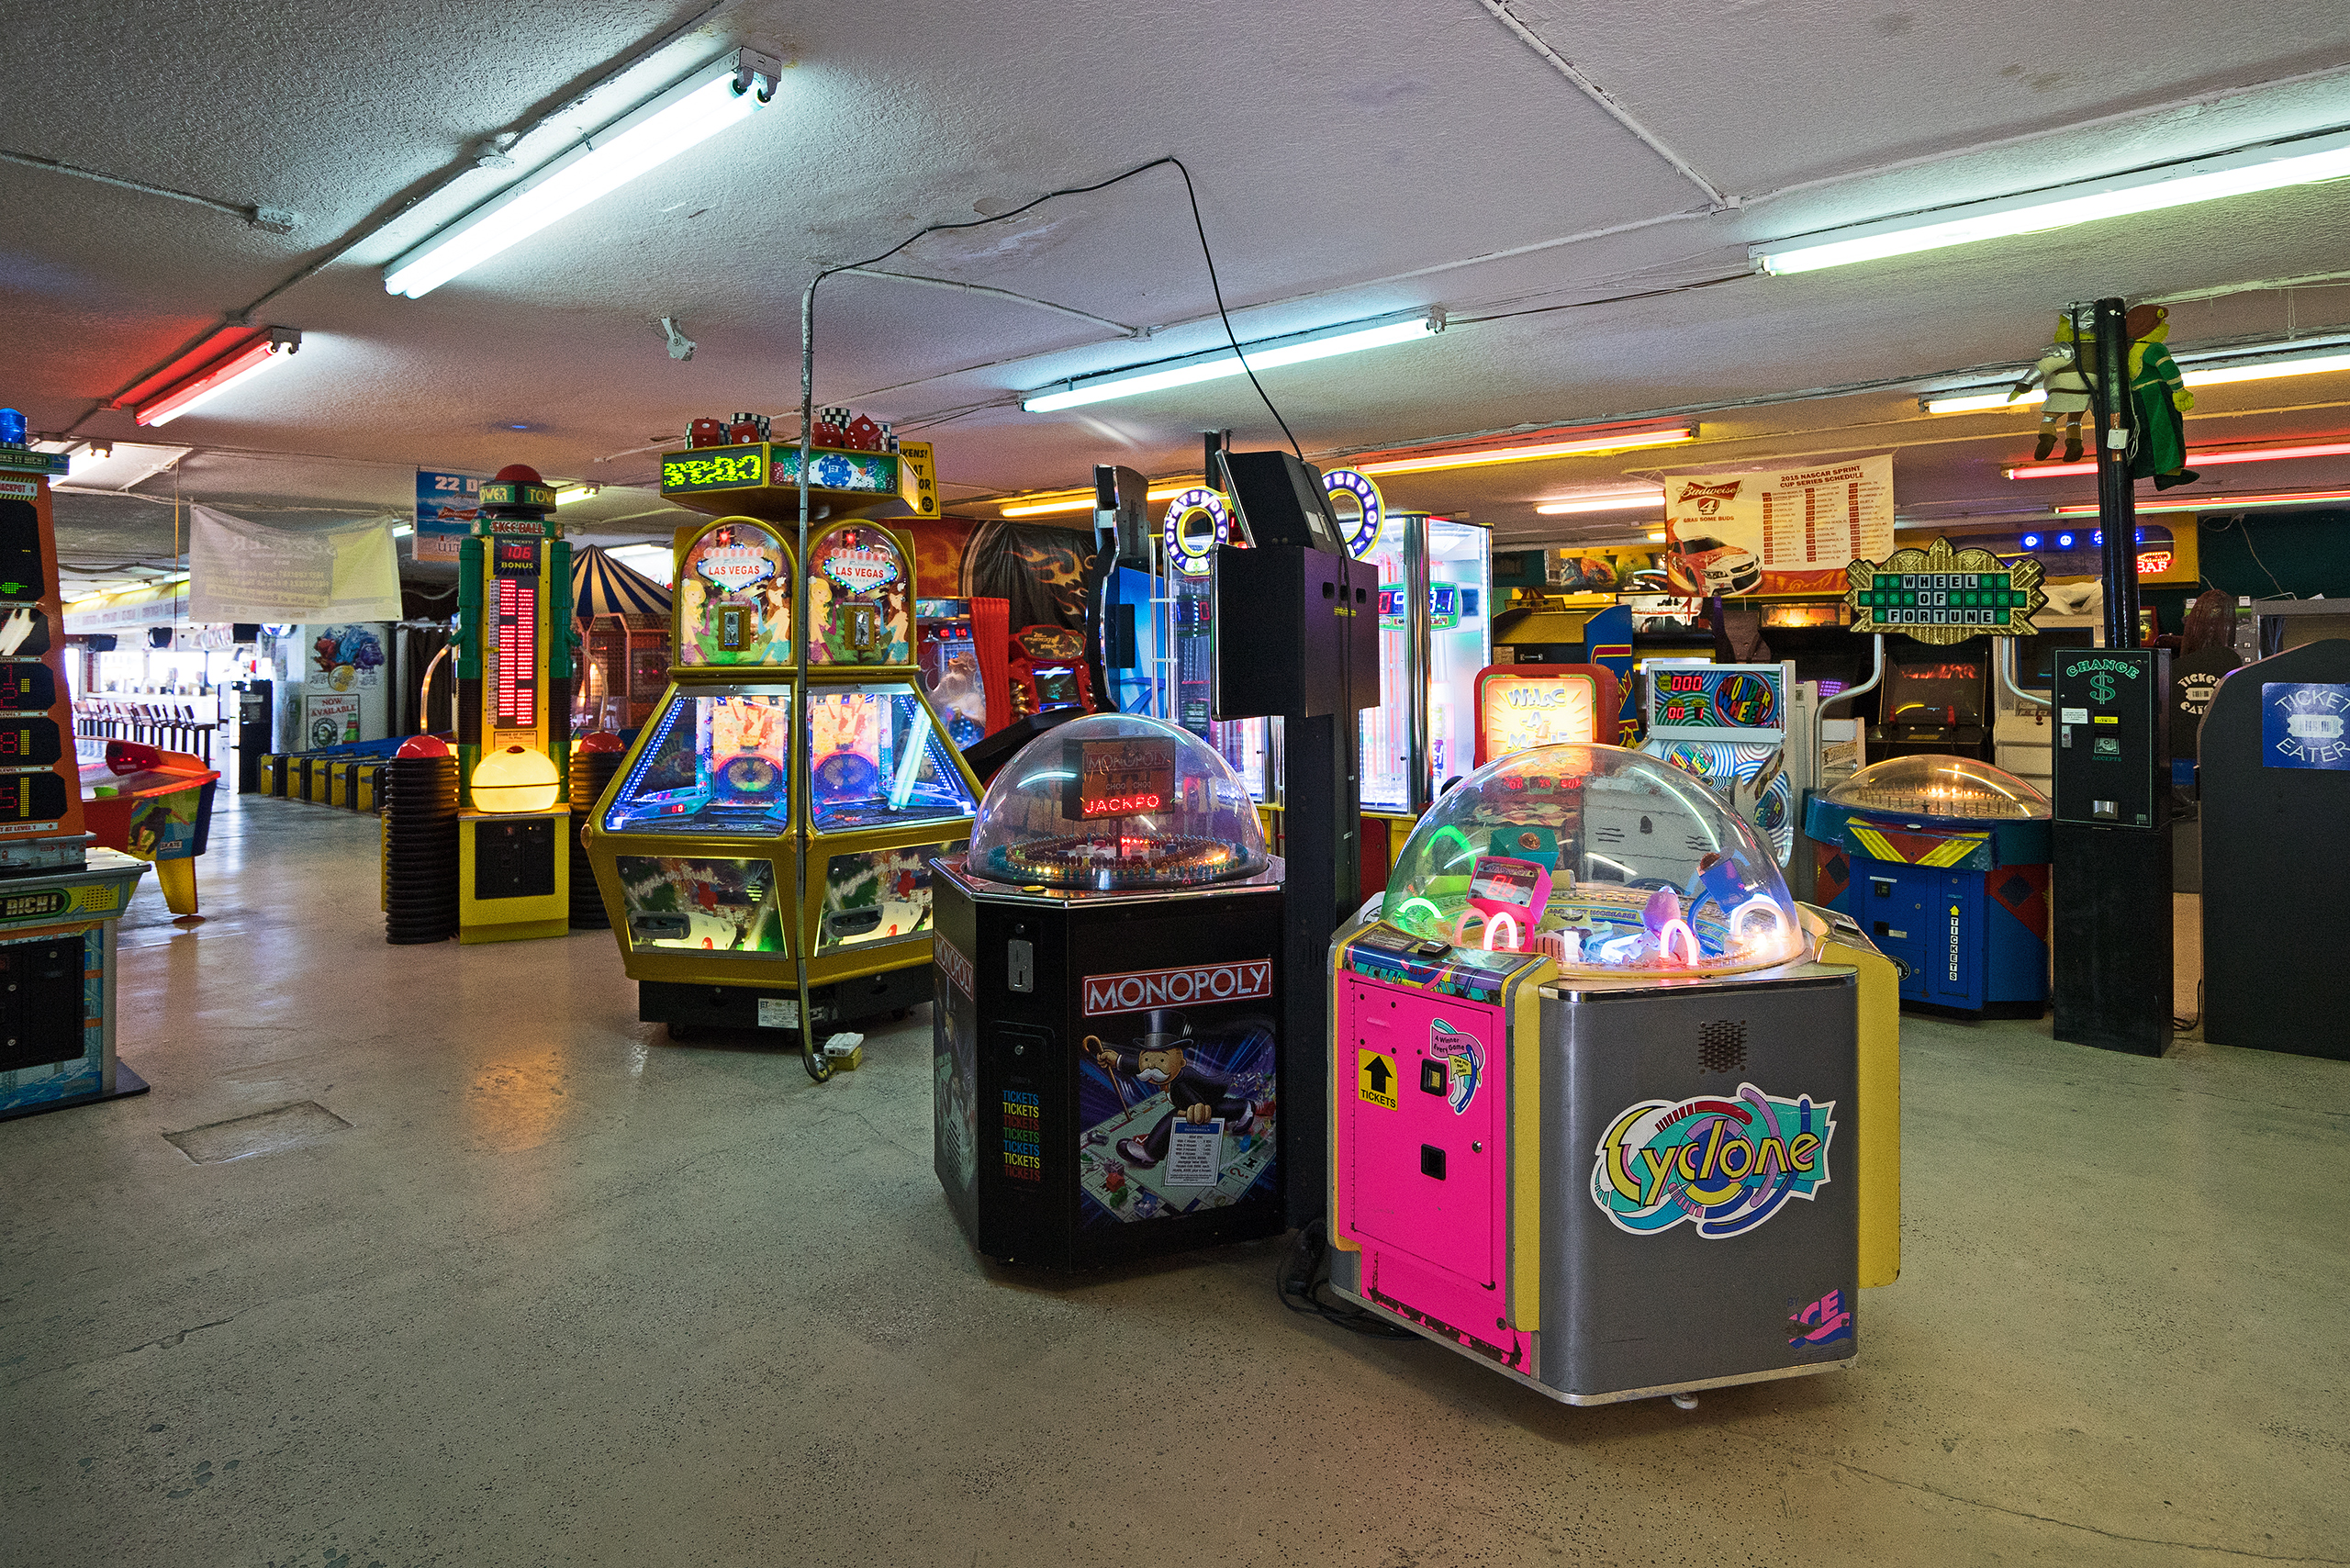 Arcade | Daytona Beach, Florida | Photo: Matthias Ries